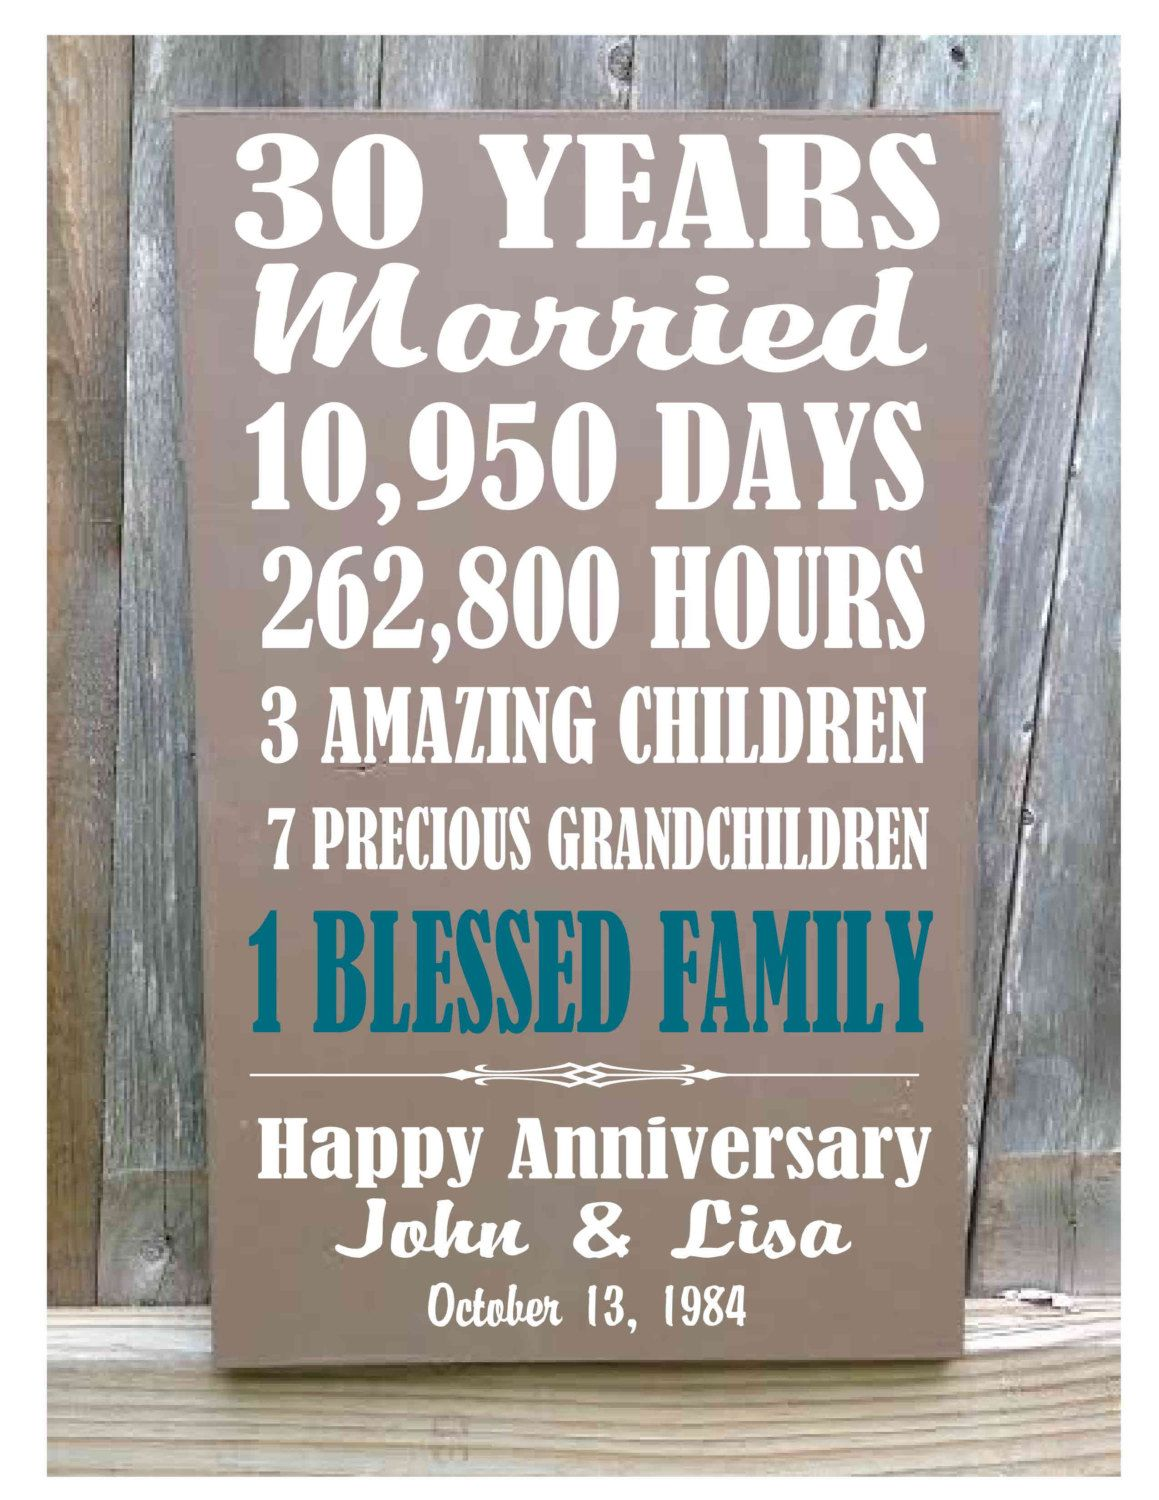 Personalized 30th Anniversary Gift 5th 10th 20th 25th 40th 50th Anniversary 30th Anniversary Gifts 50th Anniversary Gifts Creative Wedding Anniversary Gifts